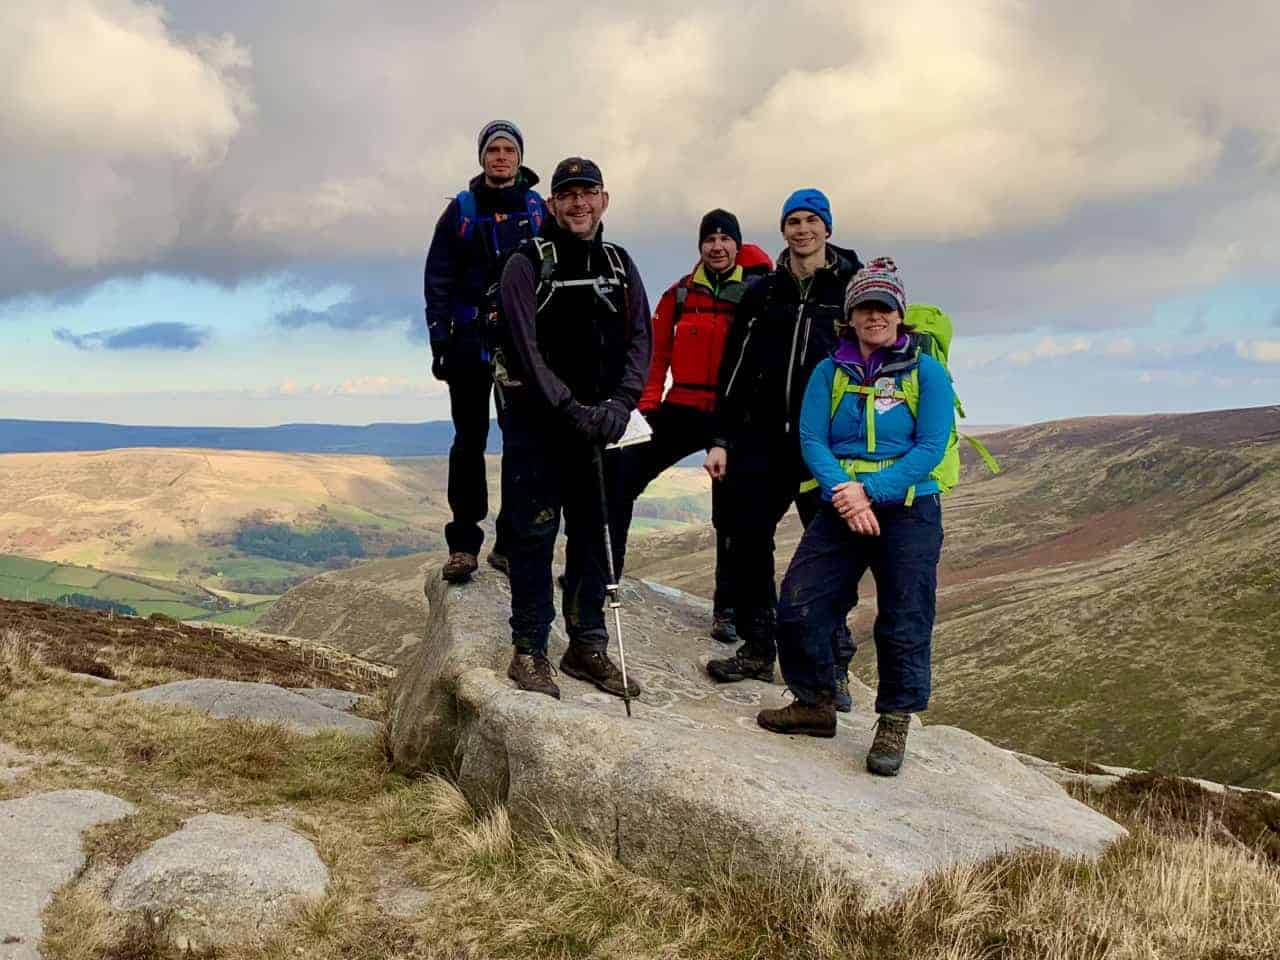 A walking group on the 9 Edges Challenge in the Peak District.